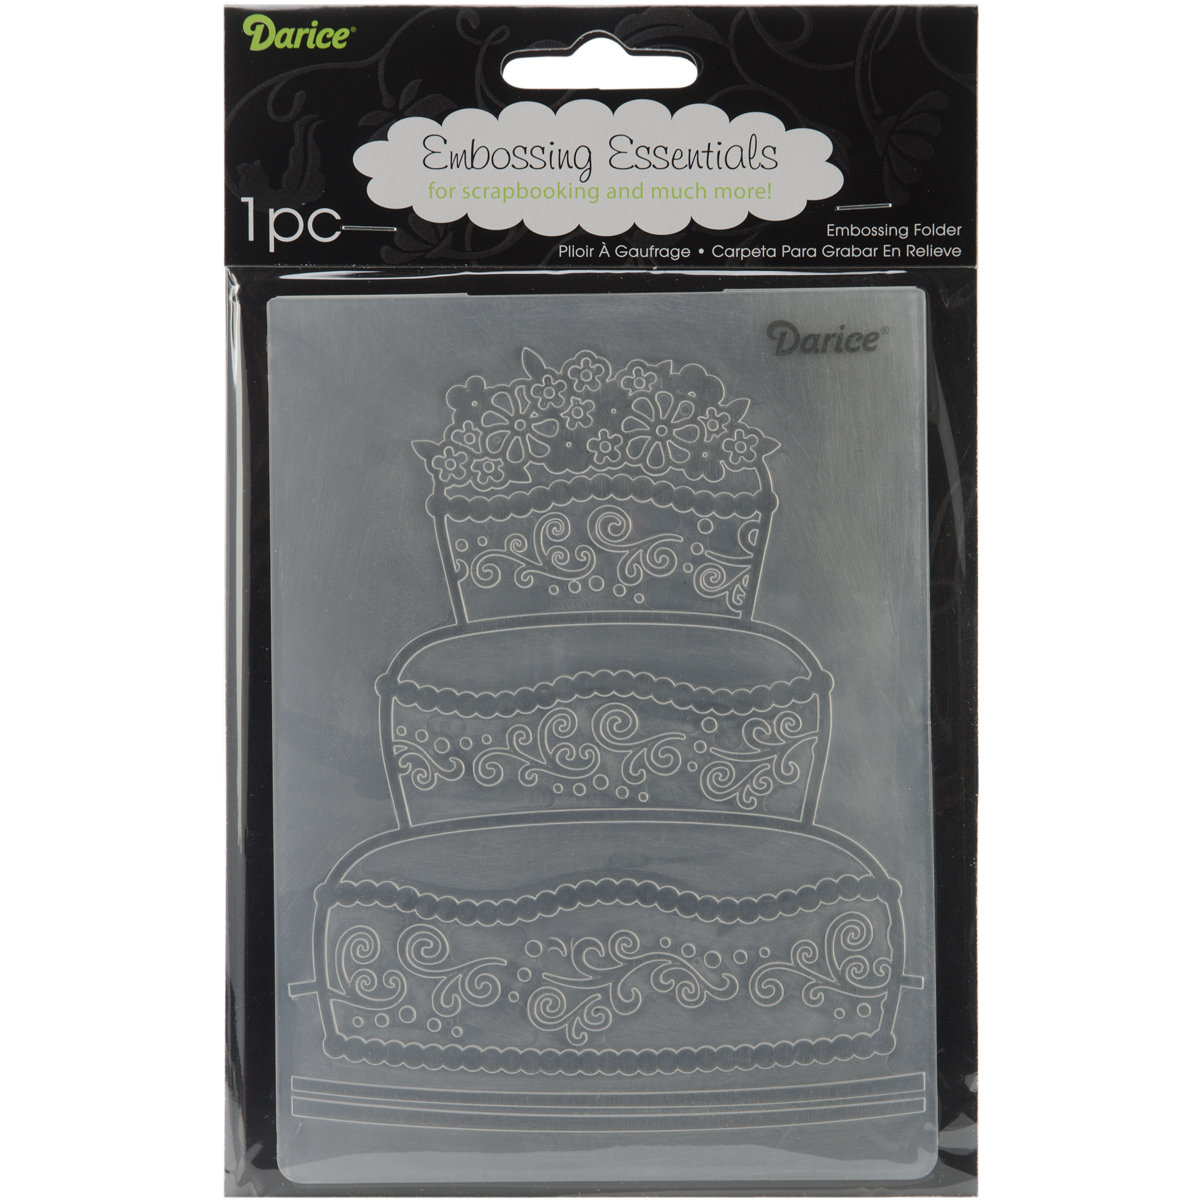 Embossing Folder Fancy Cake 4.25 X 5.75 Inches - $6.46